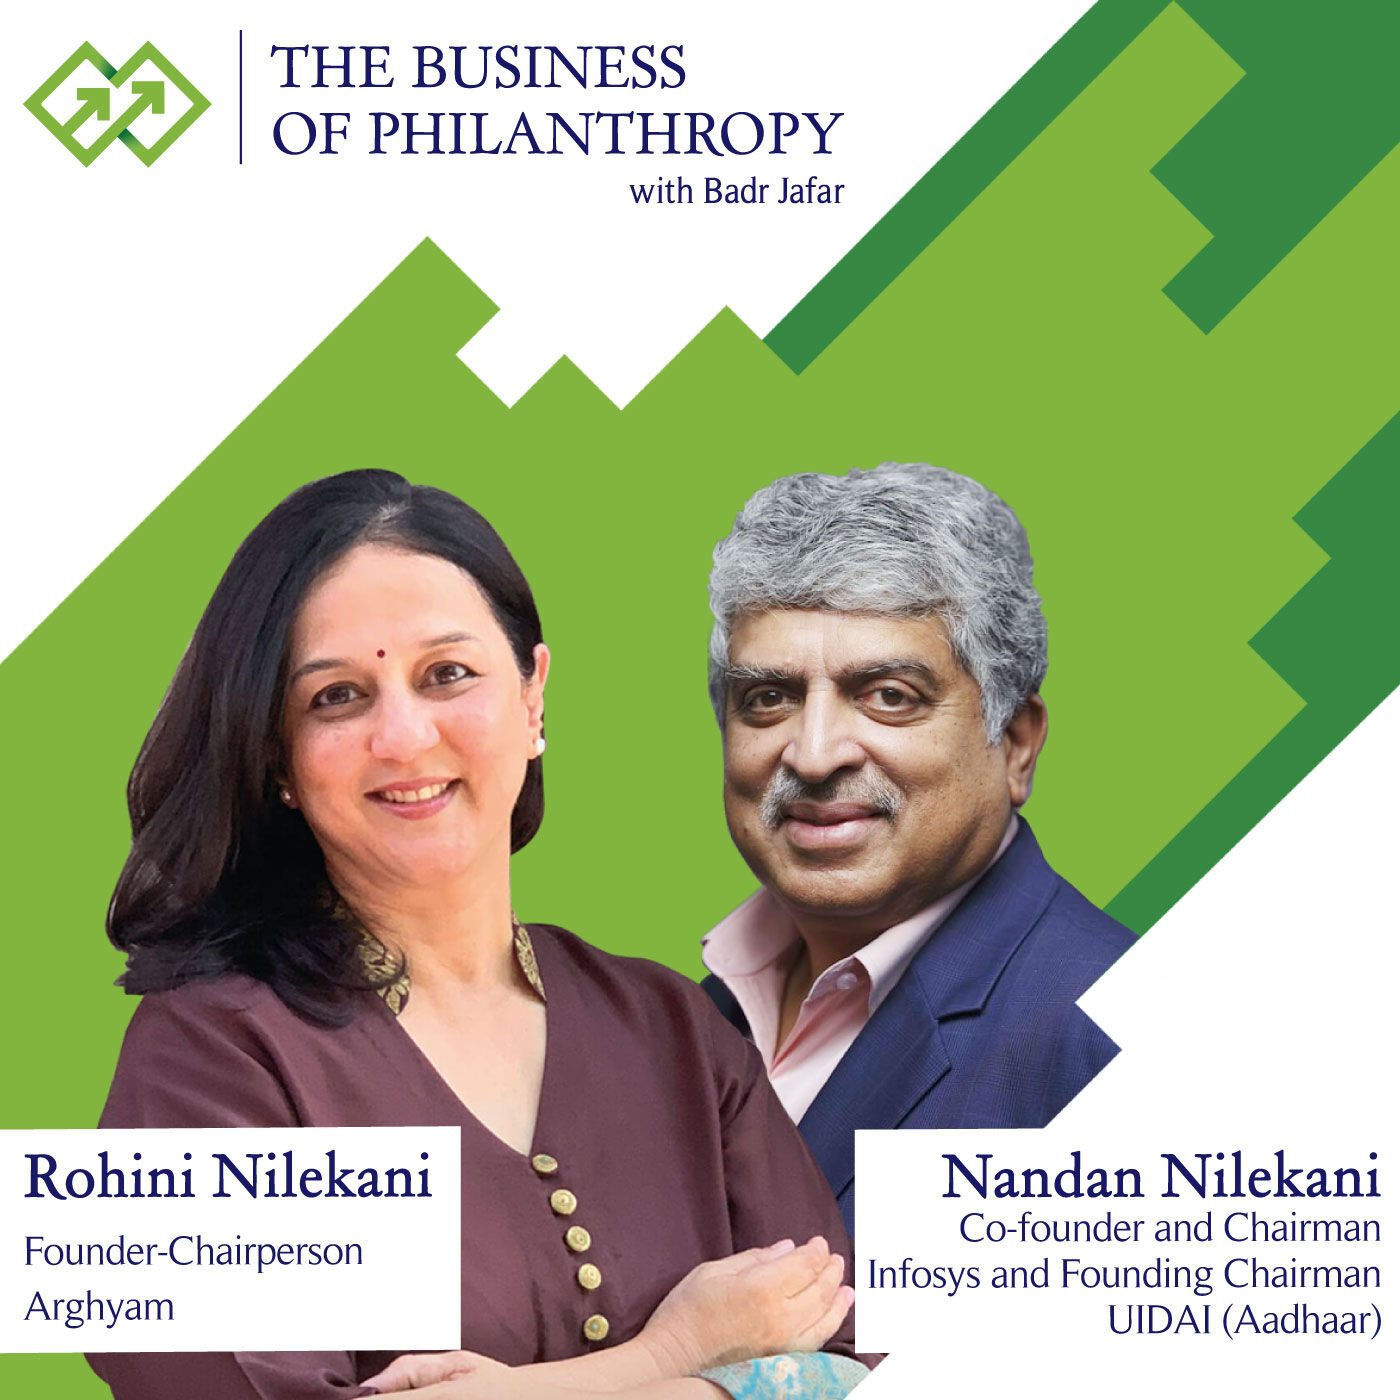 Nandan and Rohini Nilekani; A Conversation with Badr Jafar